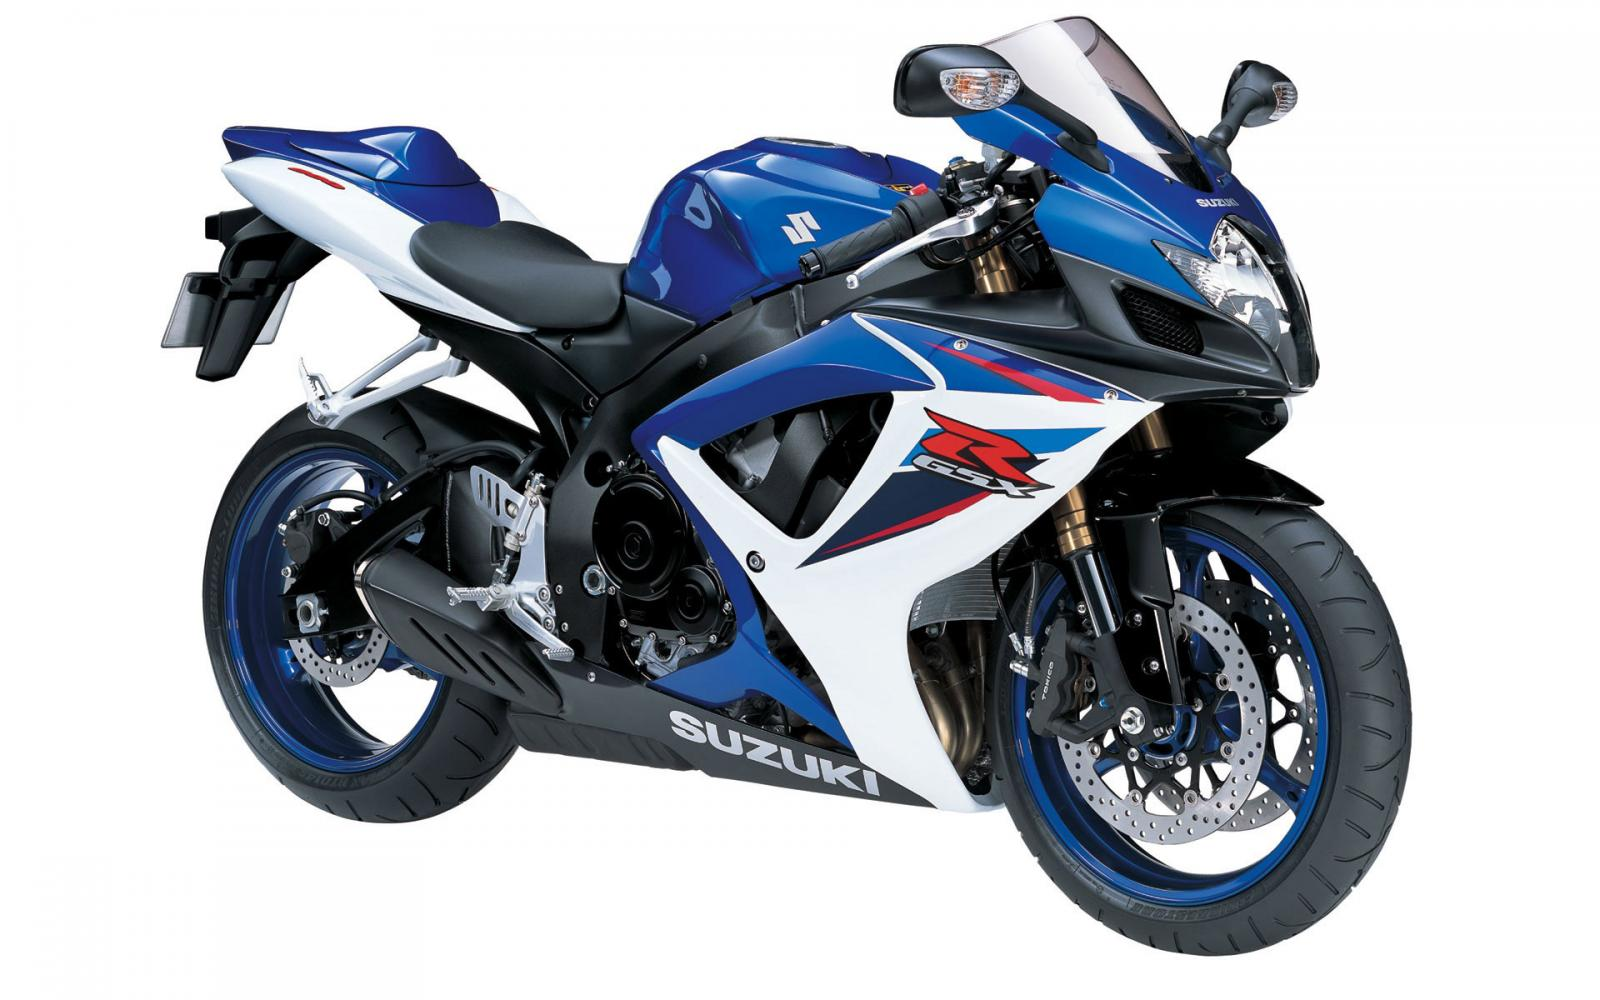 2014 suzuki gsx r 600 moto zombdrive com. Black Bedroom Furniture Sets. Home Design Ideas